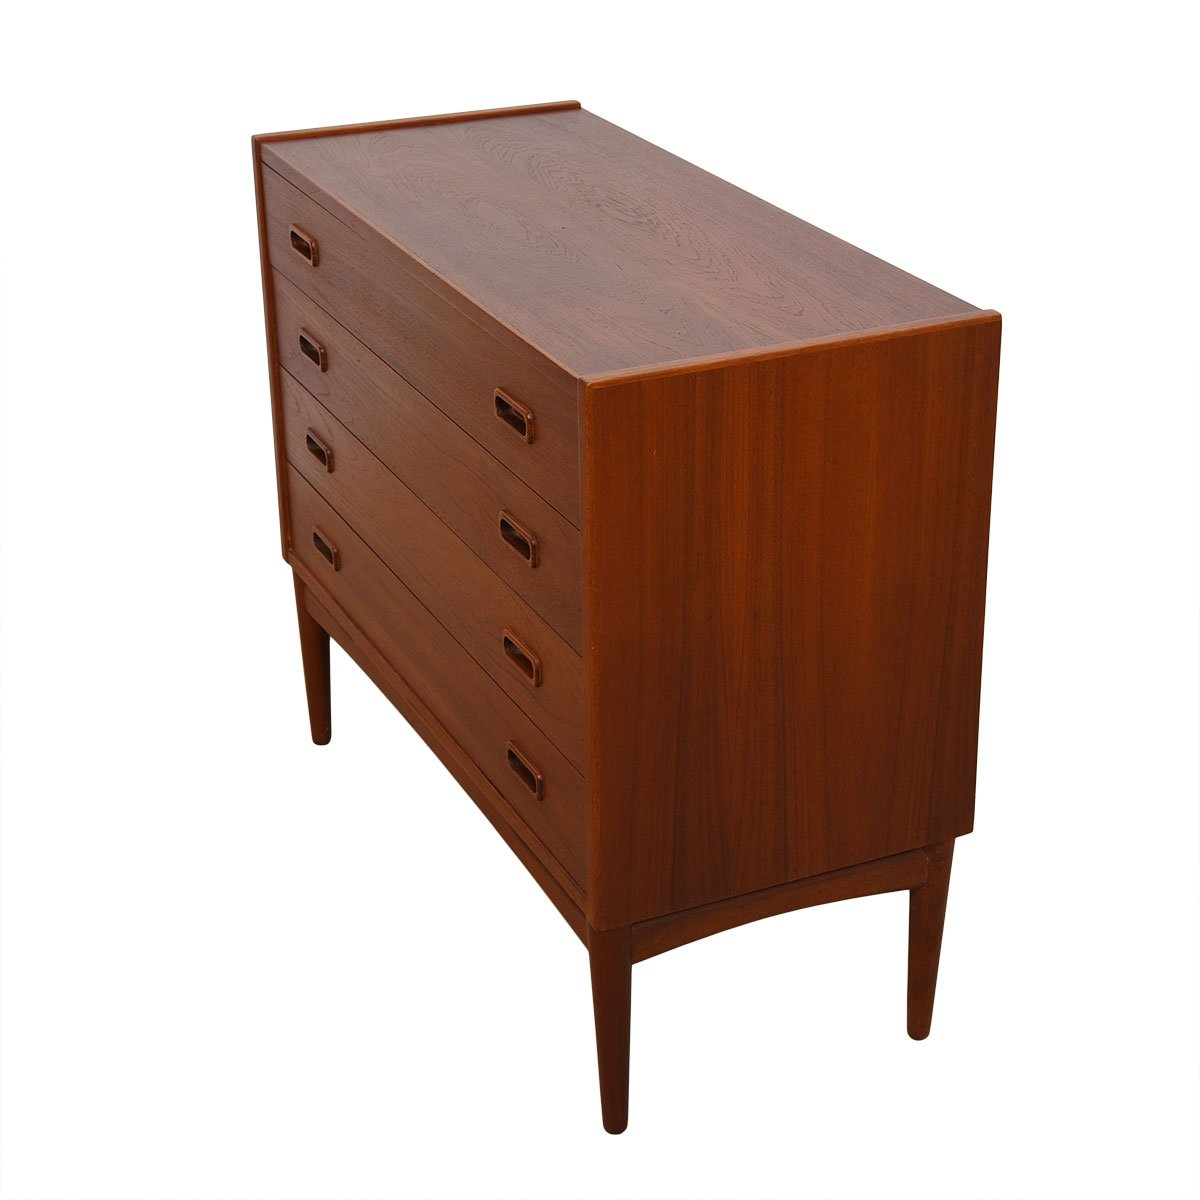 Arne Hovmand-Olsen for Mogens Kold Teak Petite Chest on Stand